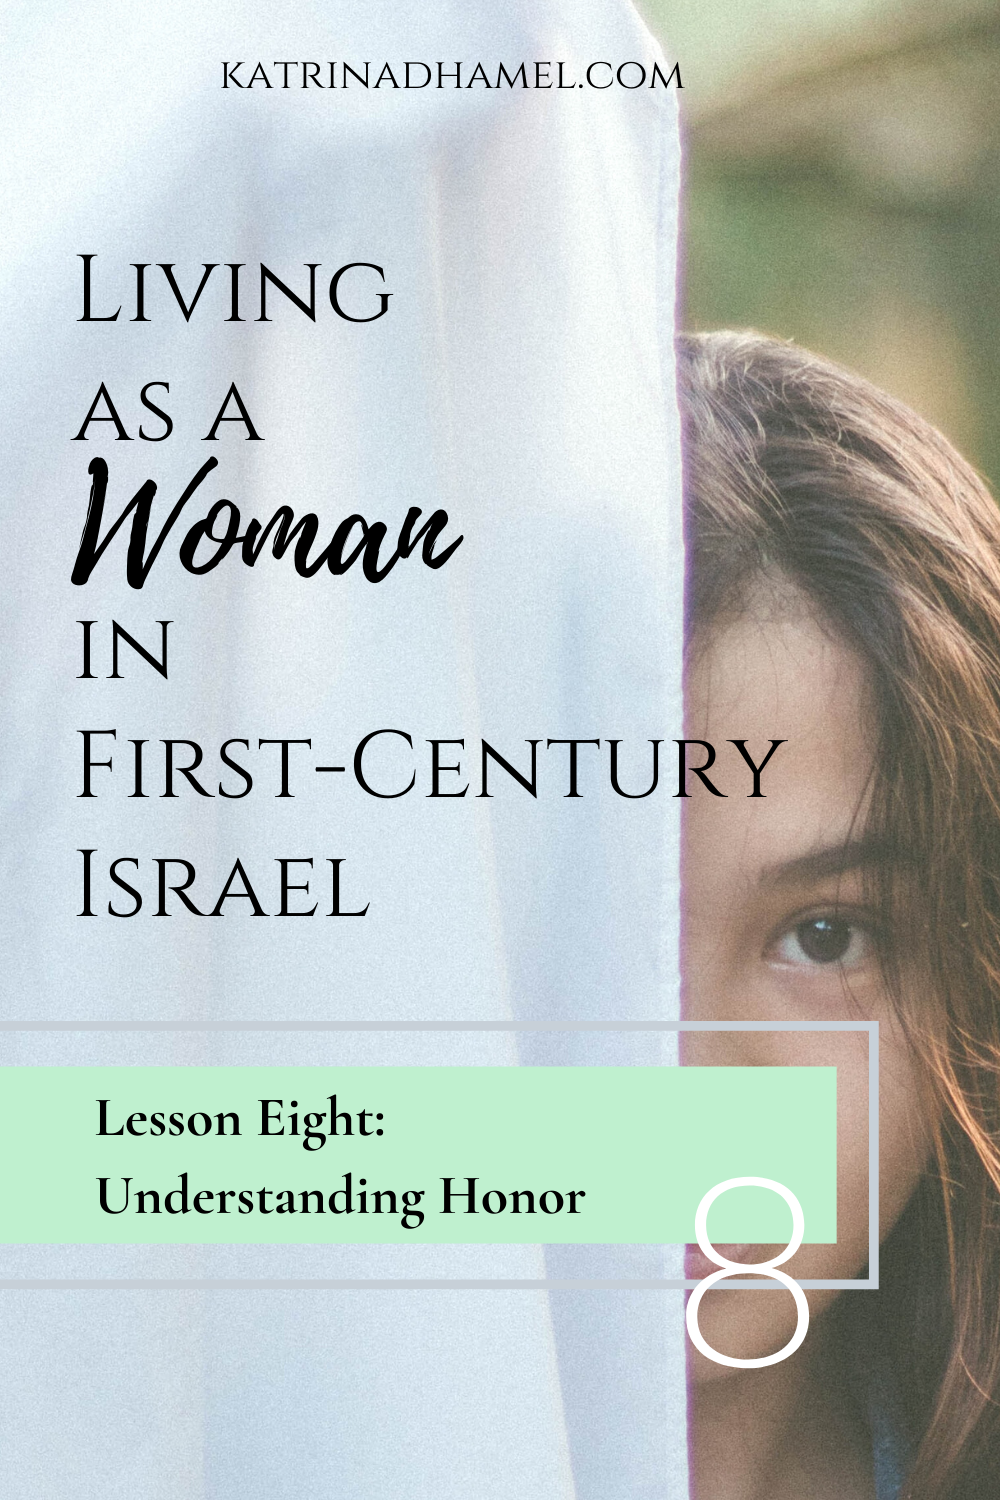 Woman hiding face behind cloth and text 'Living as a Woman in First-century Israel Lesson Eight: Understanding Honor'